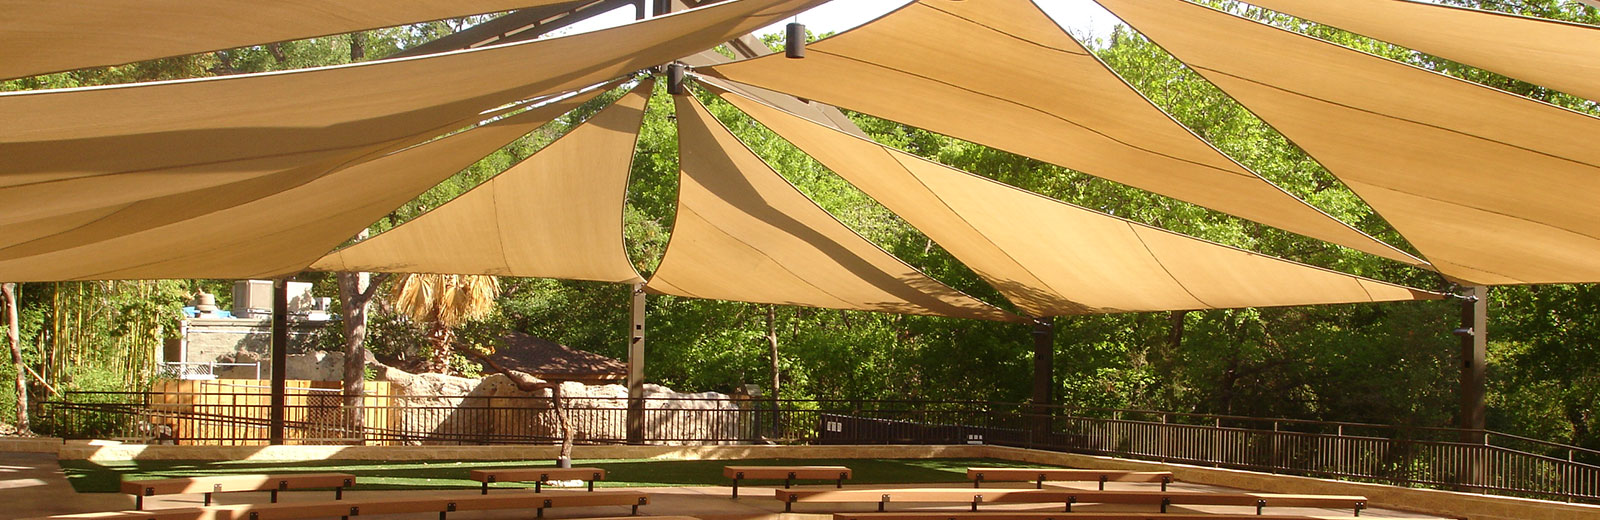 shade for outdoor zoo auditorium